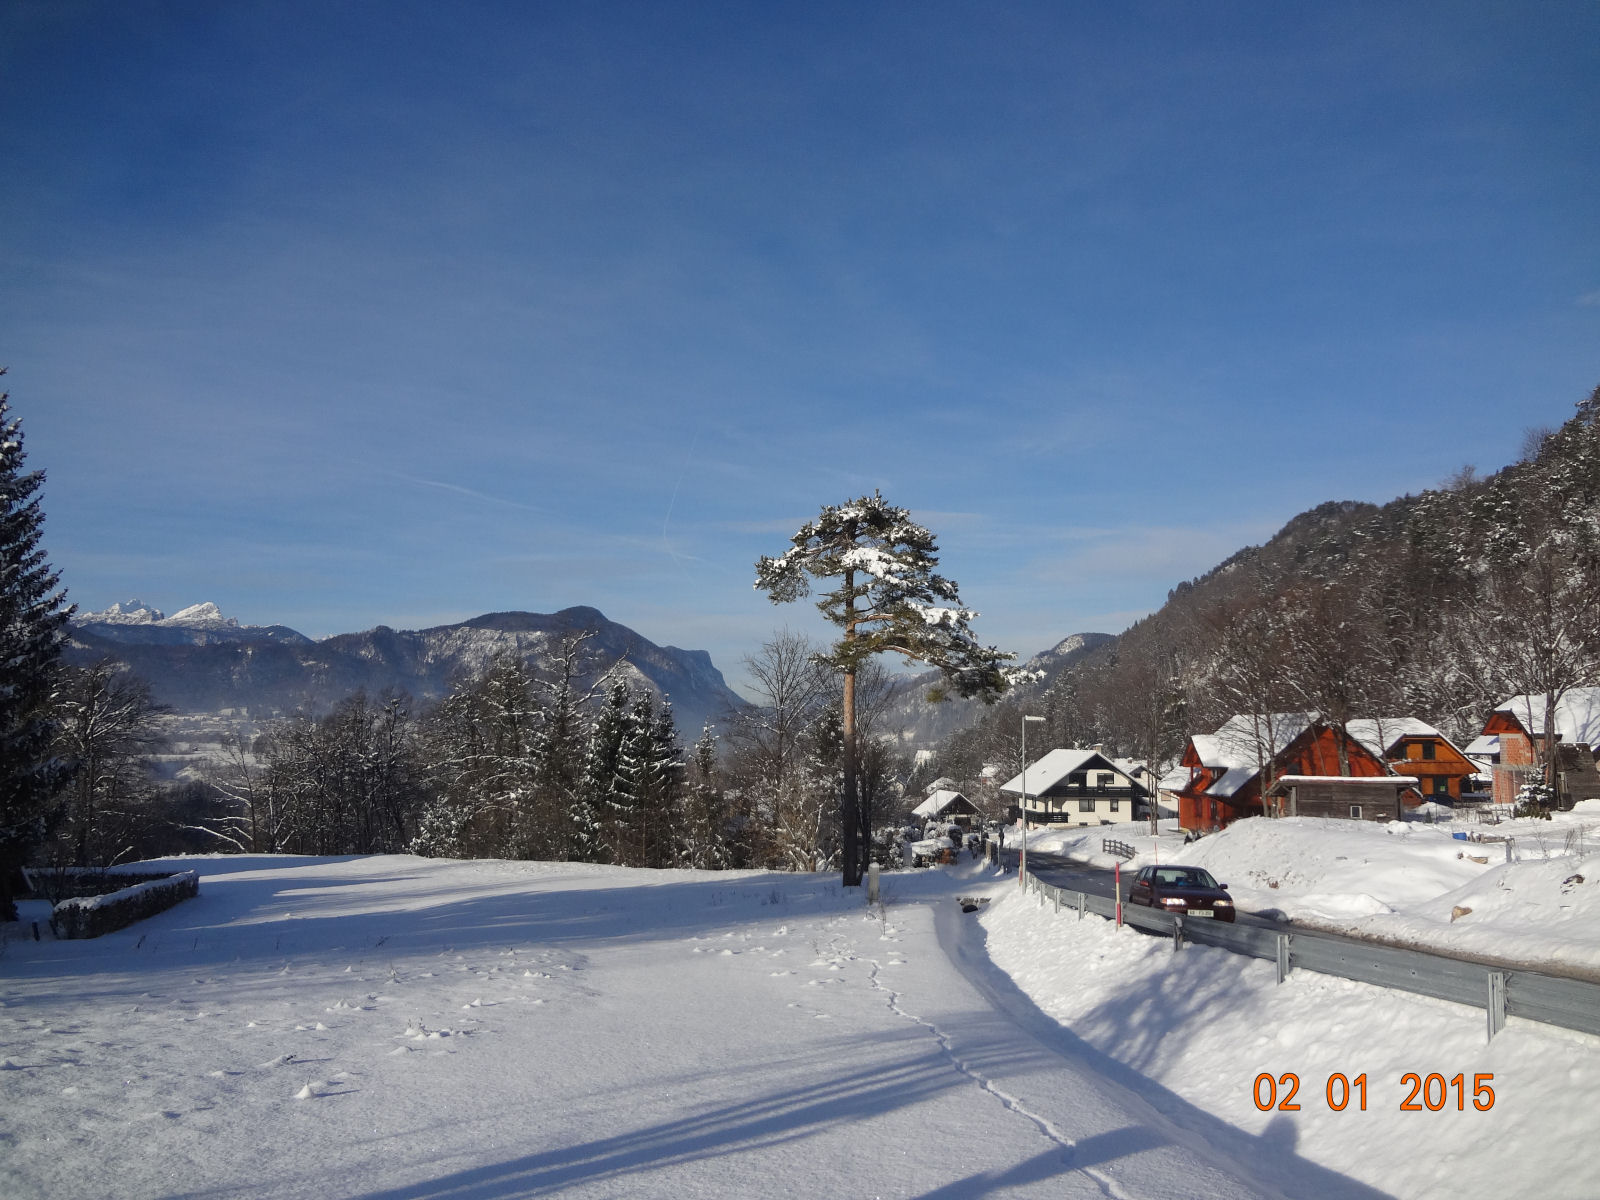 The Gorenjska region of Slovenia has plenty of snow and sun during winter